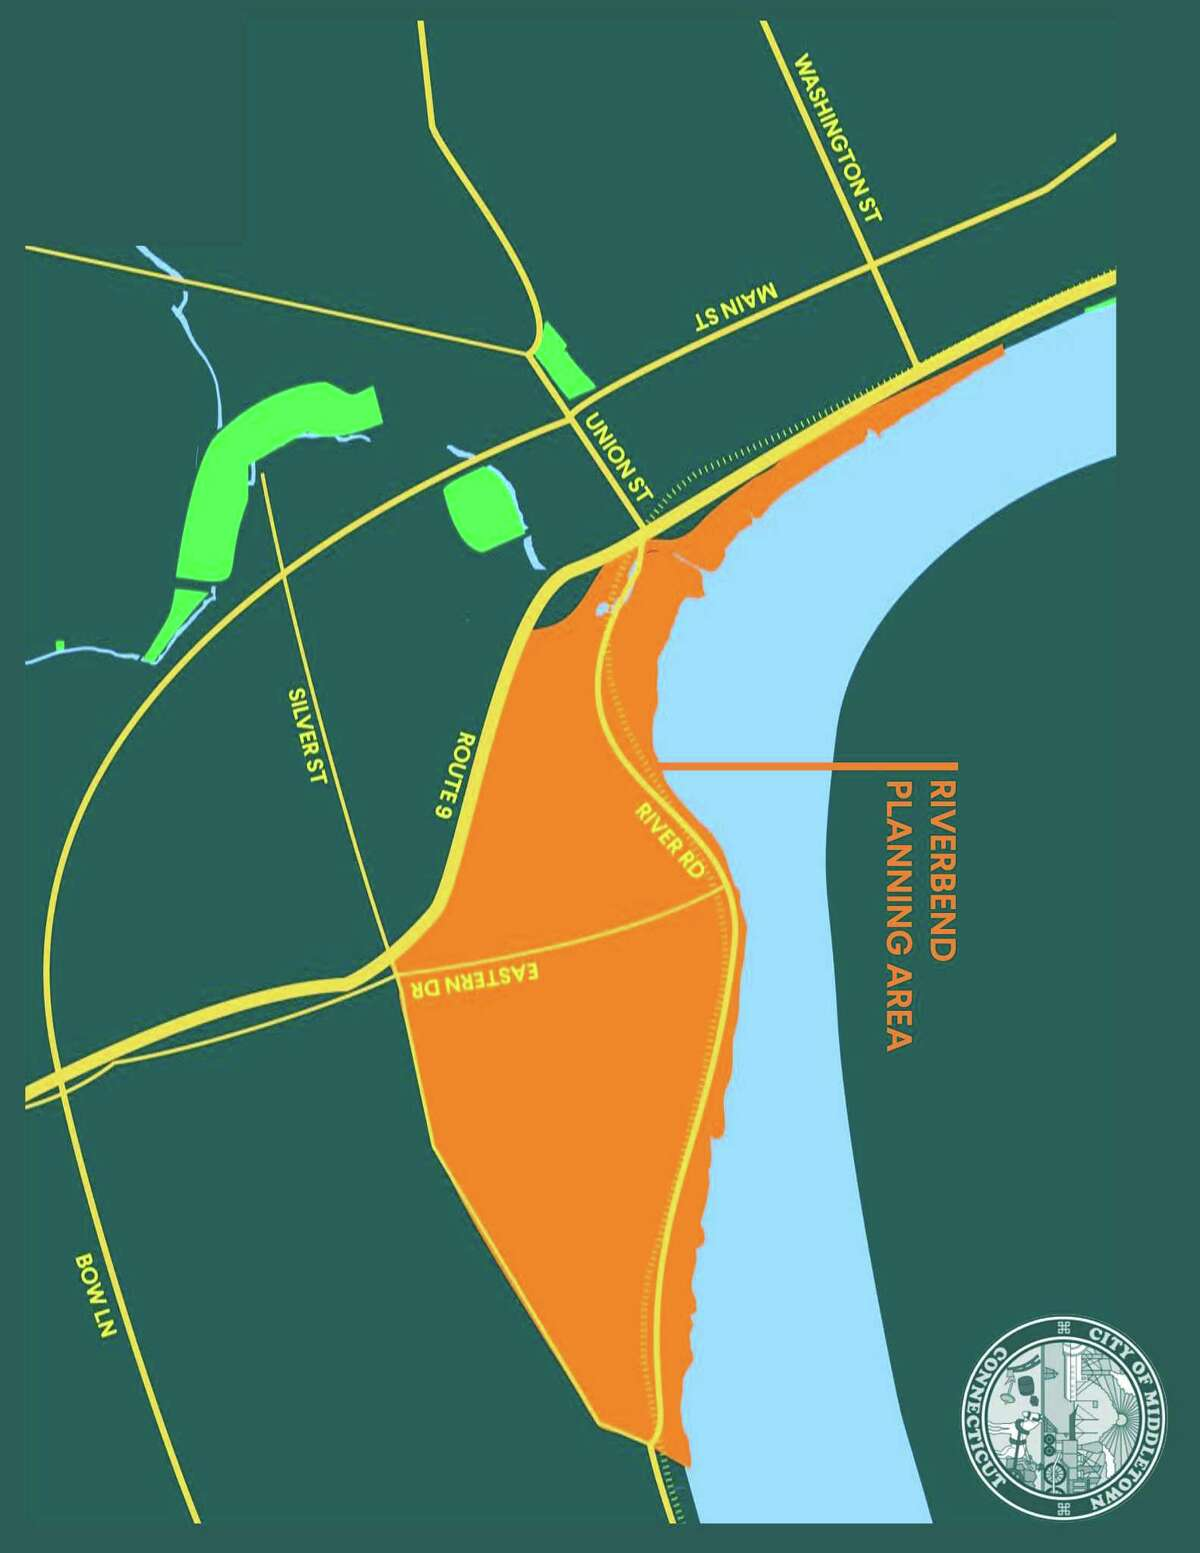 """The city of Middletown will be hosting an online visioning workshop, """"Return to the Riverbend: Planning Our Future Together"""" for the revitalization of the Connecticut Riverfront Oct. 12. The master plan was created by Cooper Robertson."""